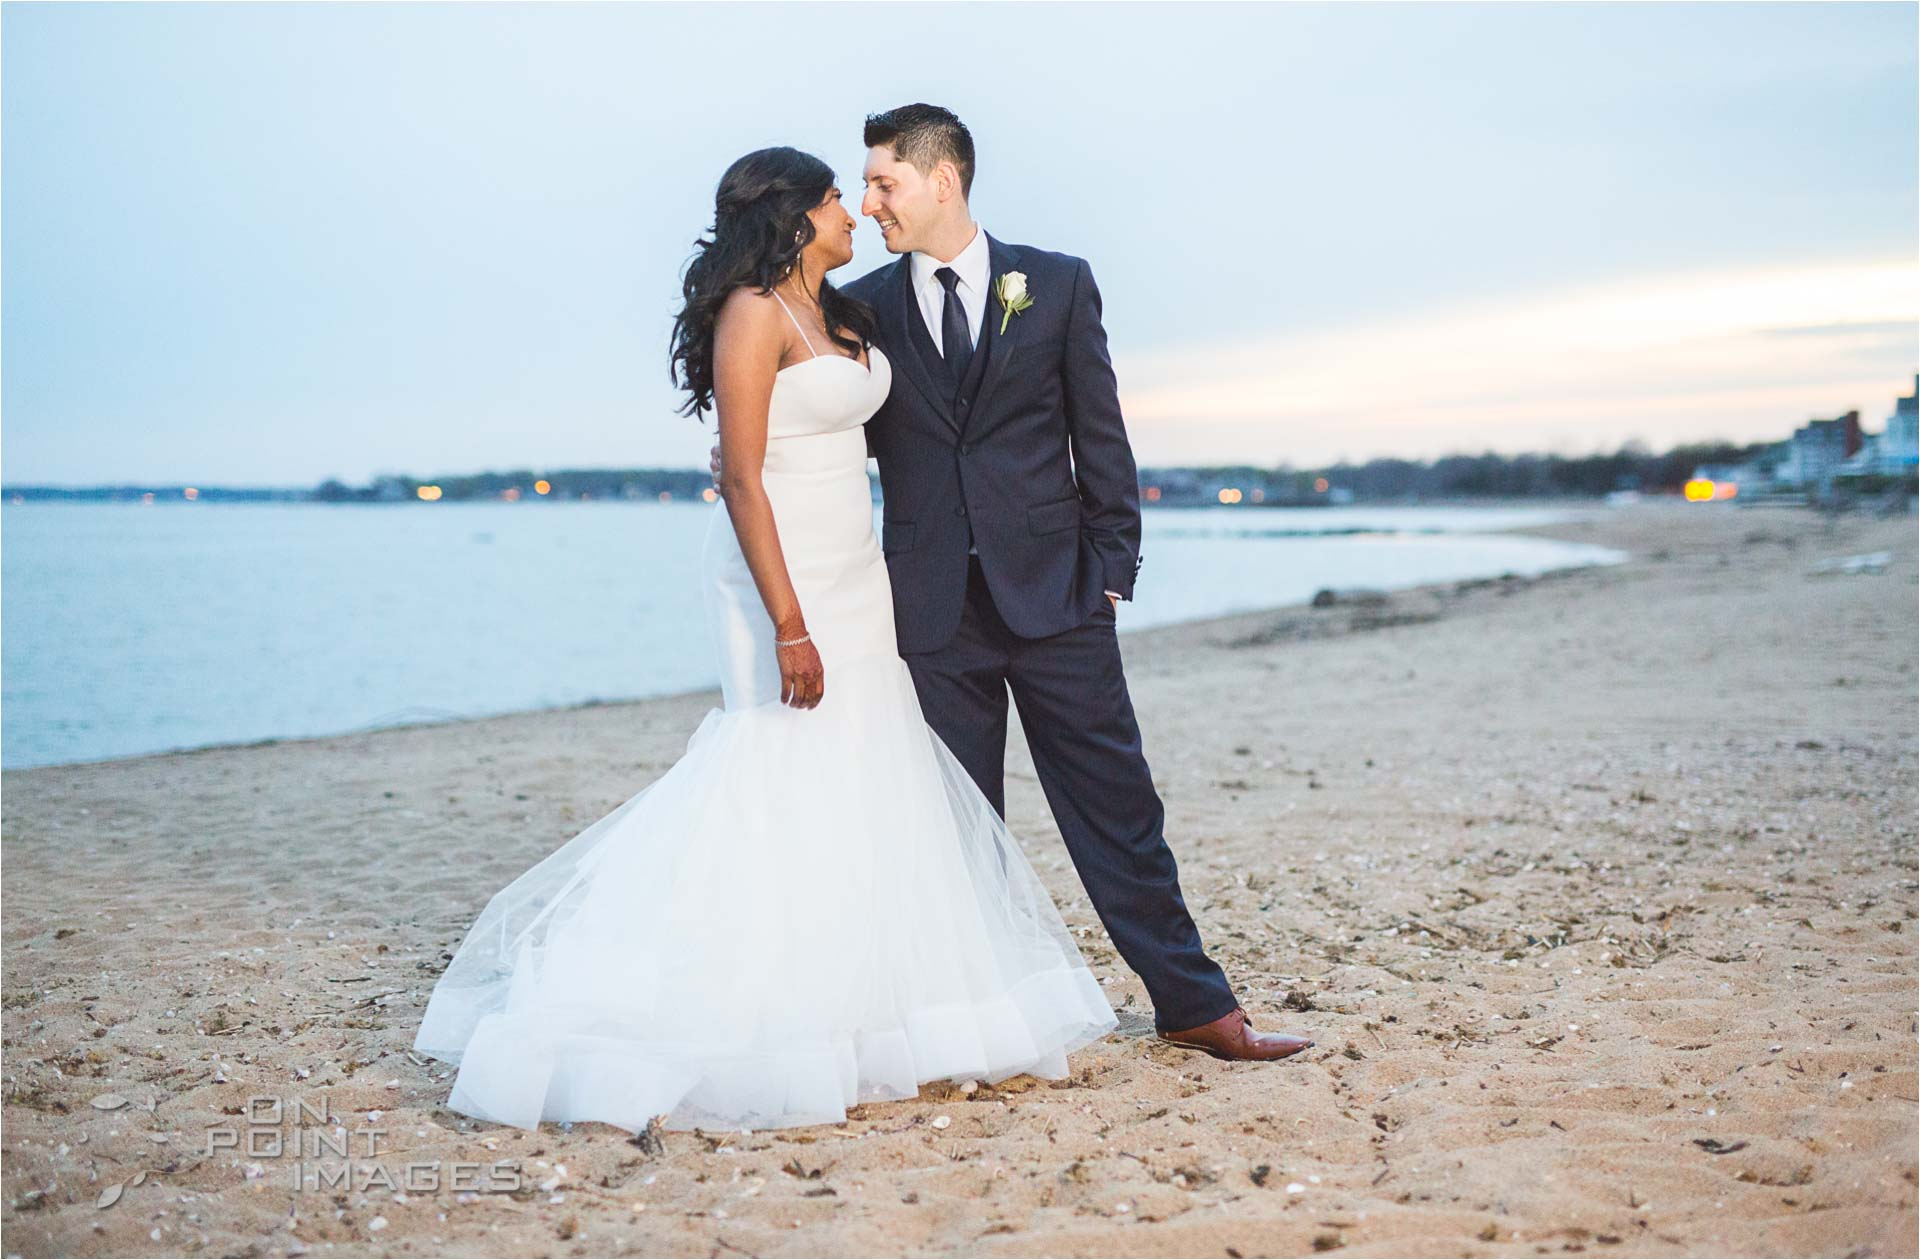 madison-beach-hotel-wedding-CT-01.jpg